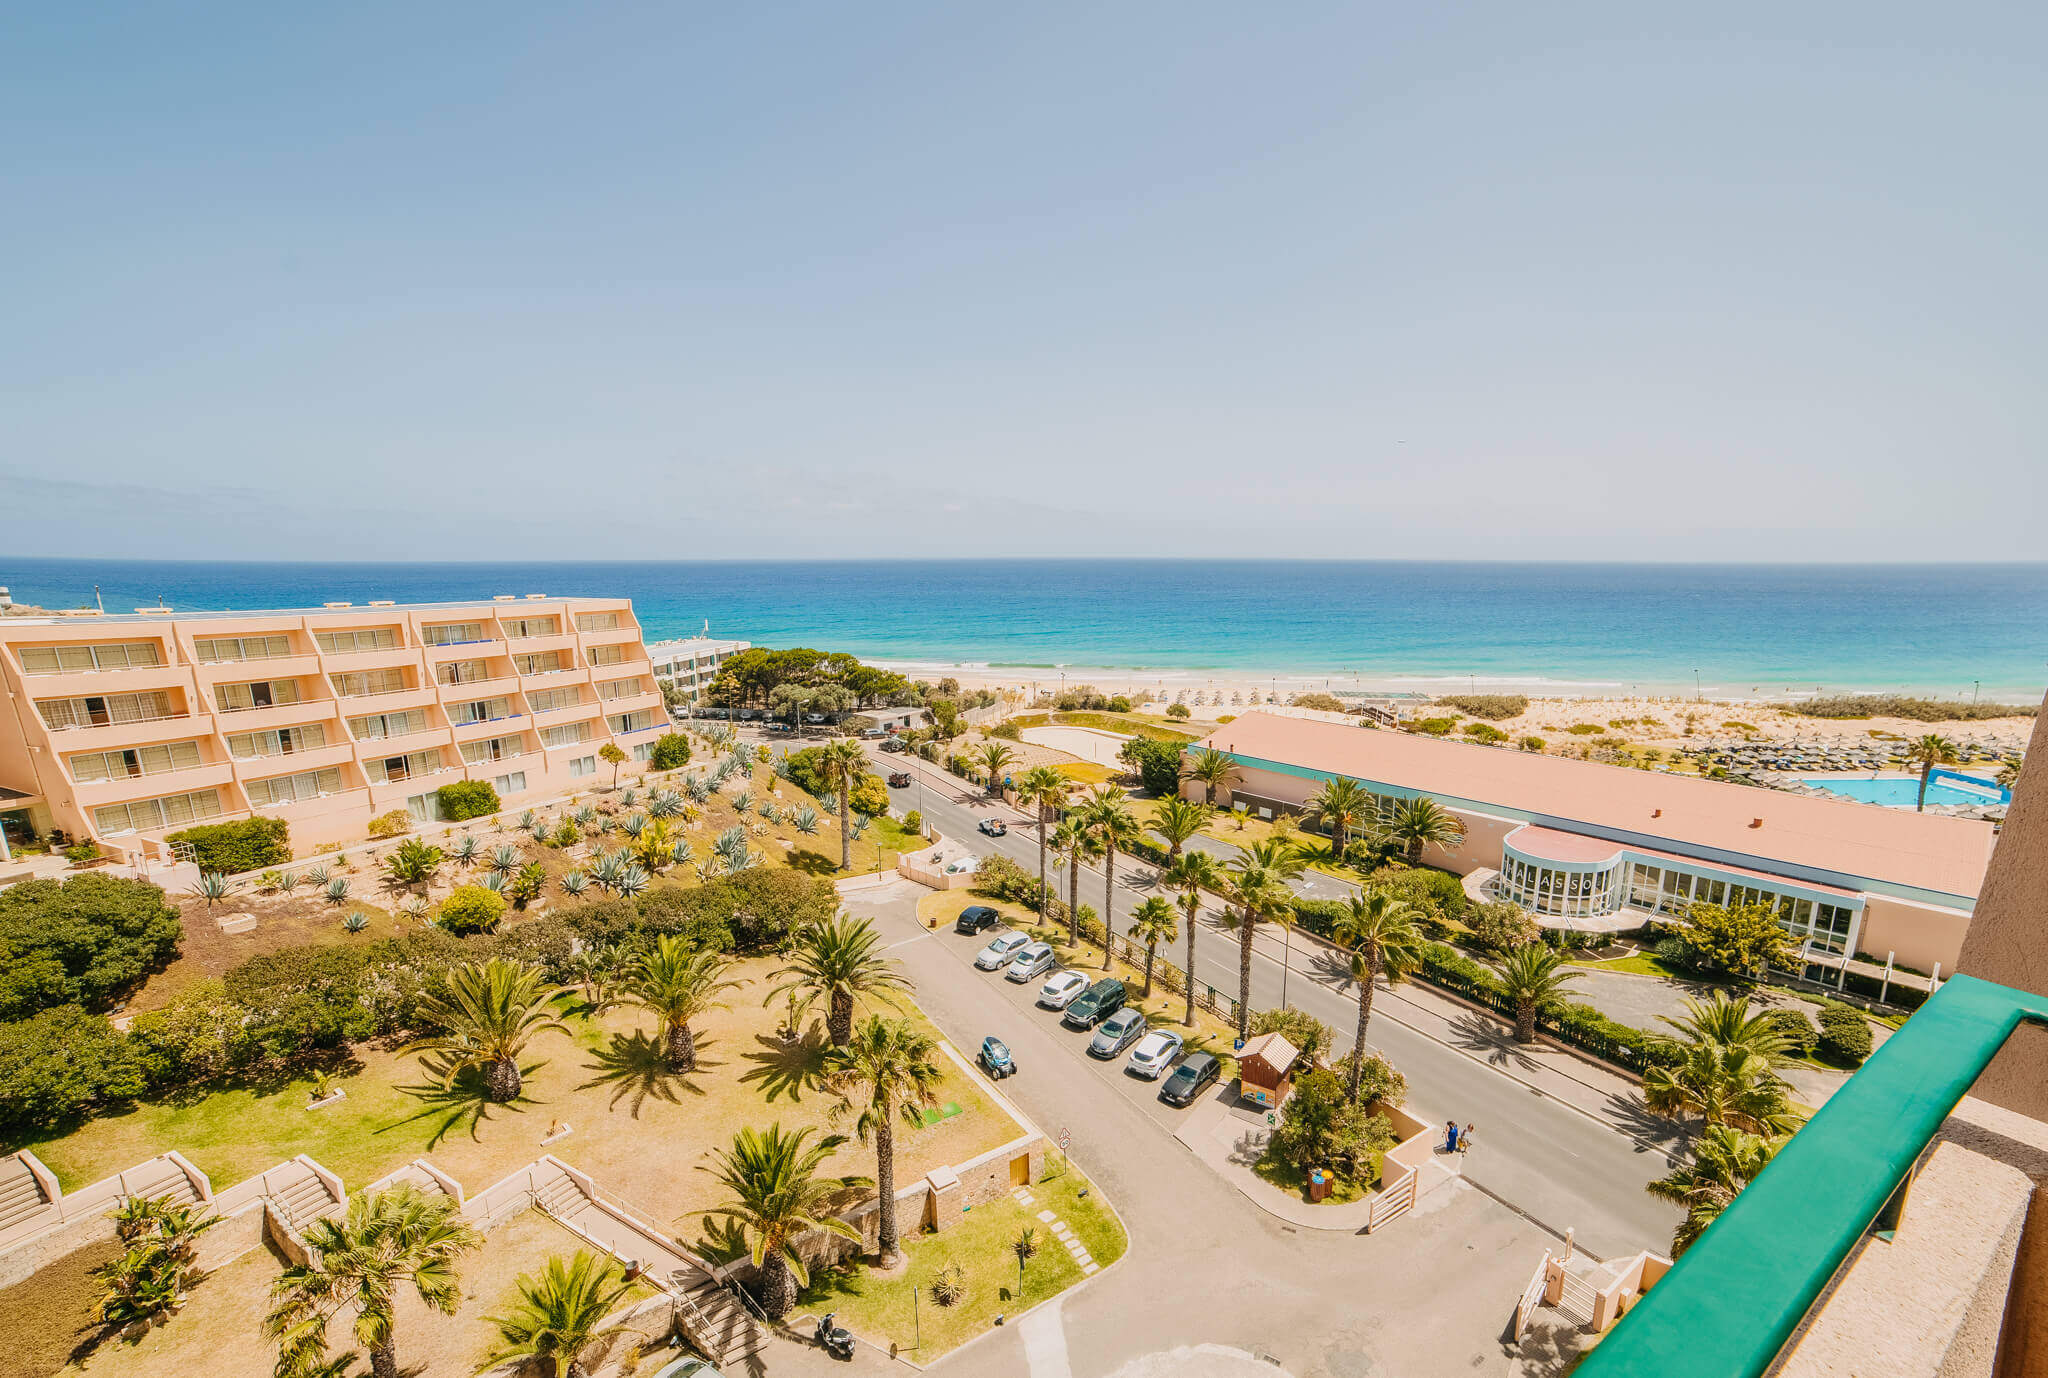 Vila Baleira Hotels Resorts The Pearl Of The Atlantic And The Golden Island